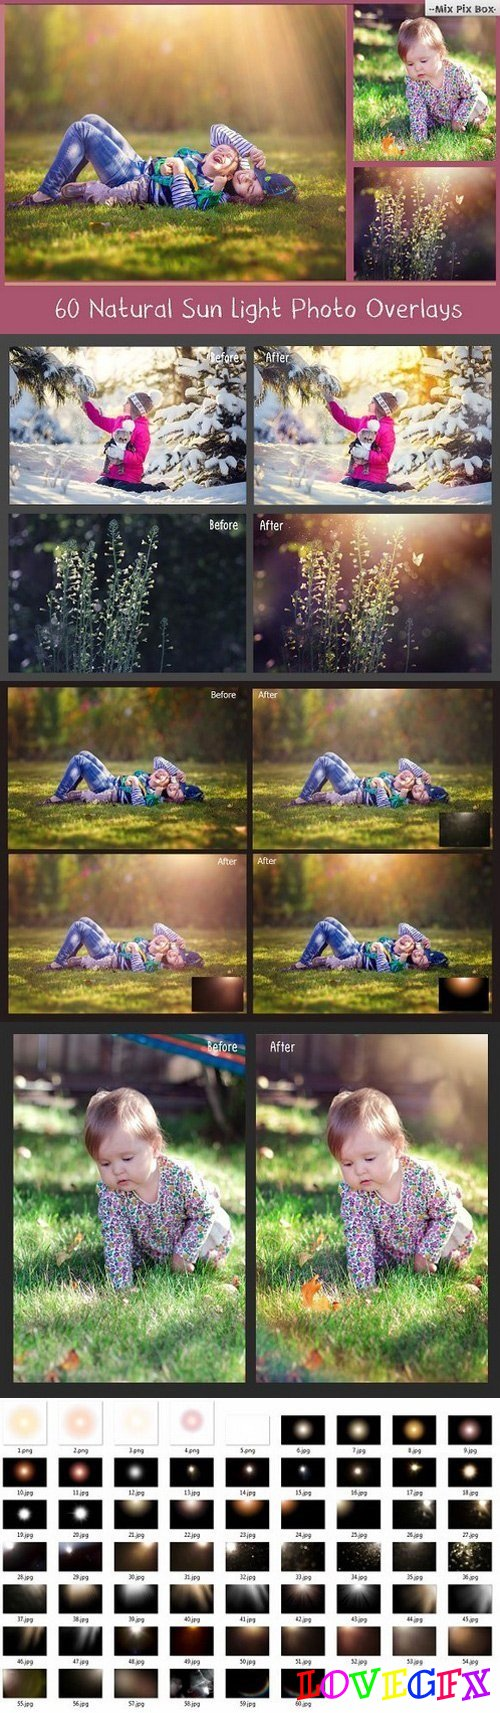 Natural Sunlight photo overlays 618525